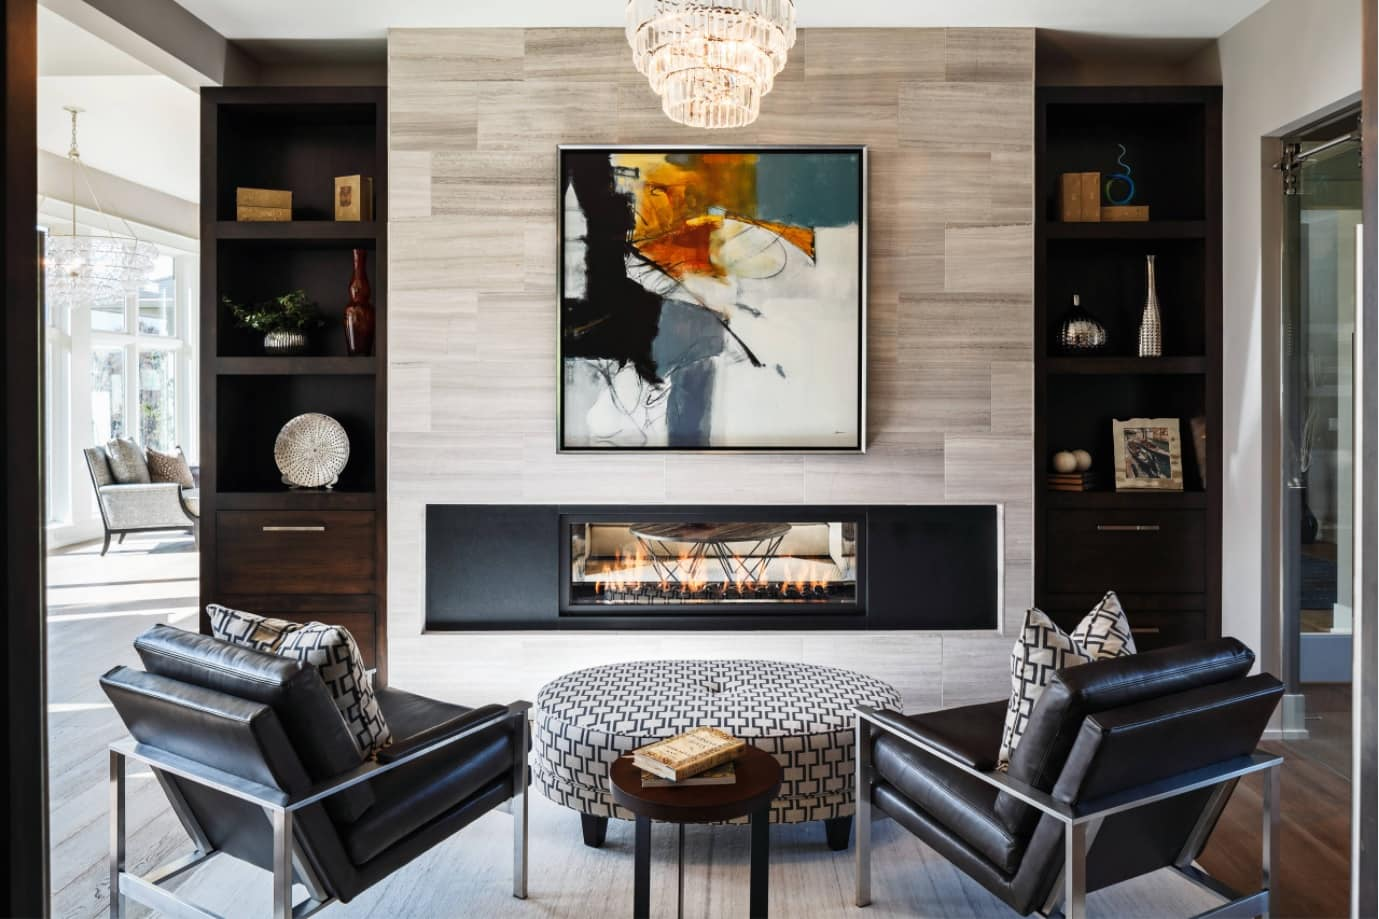 Modern English interior with fireplace, dark chairs and accent wall